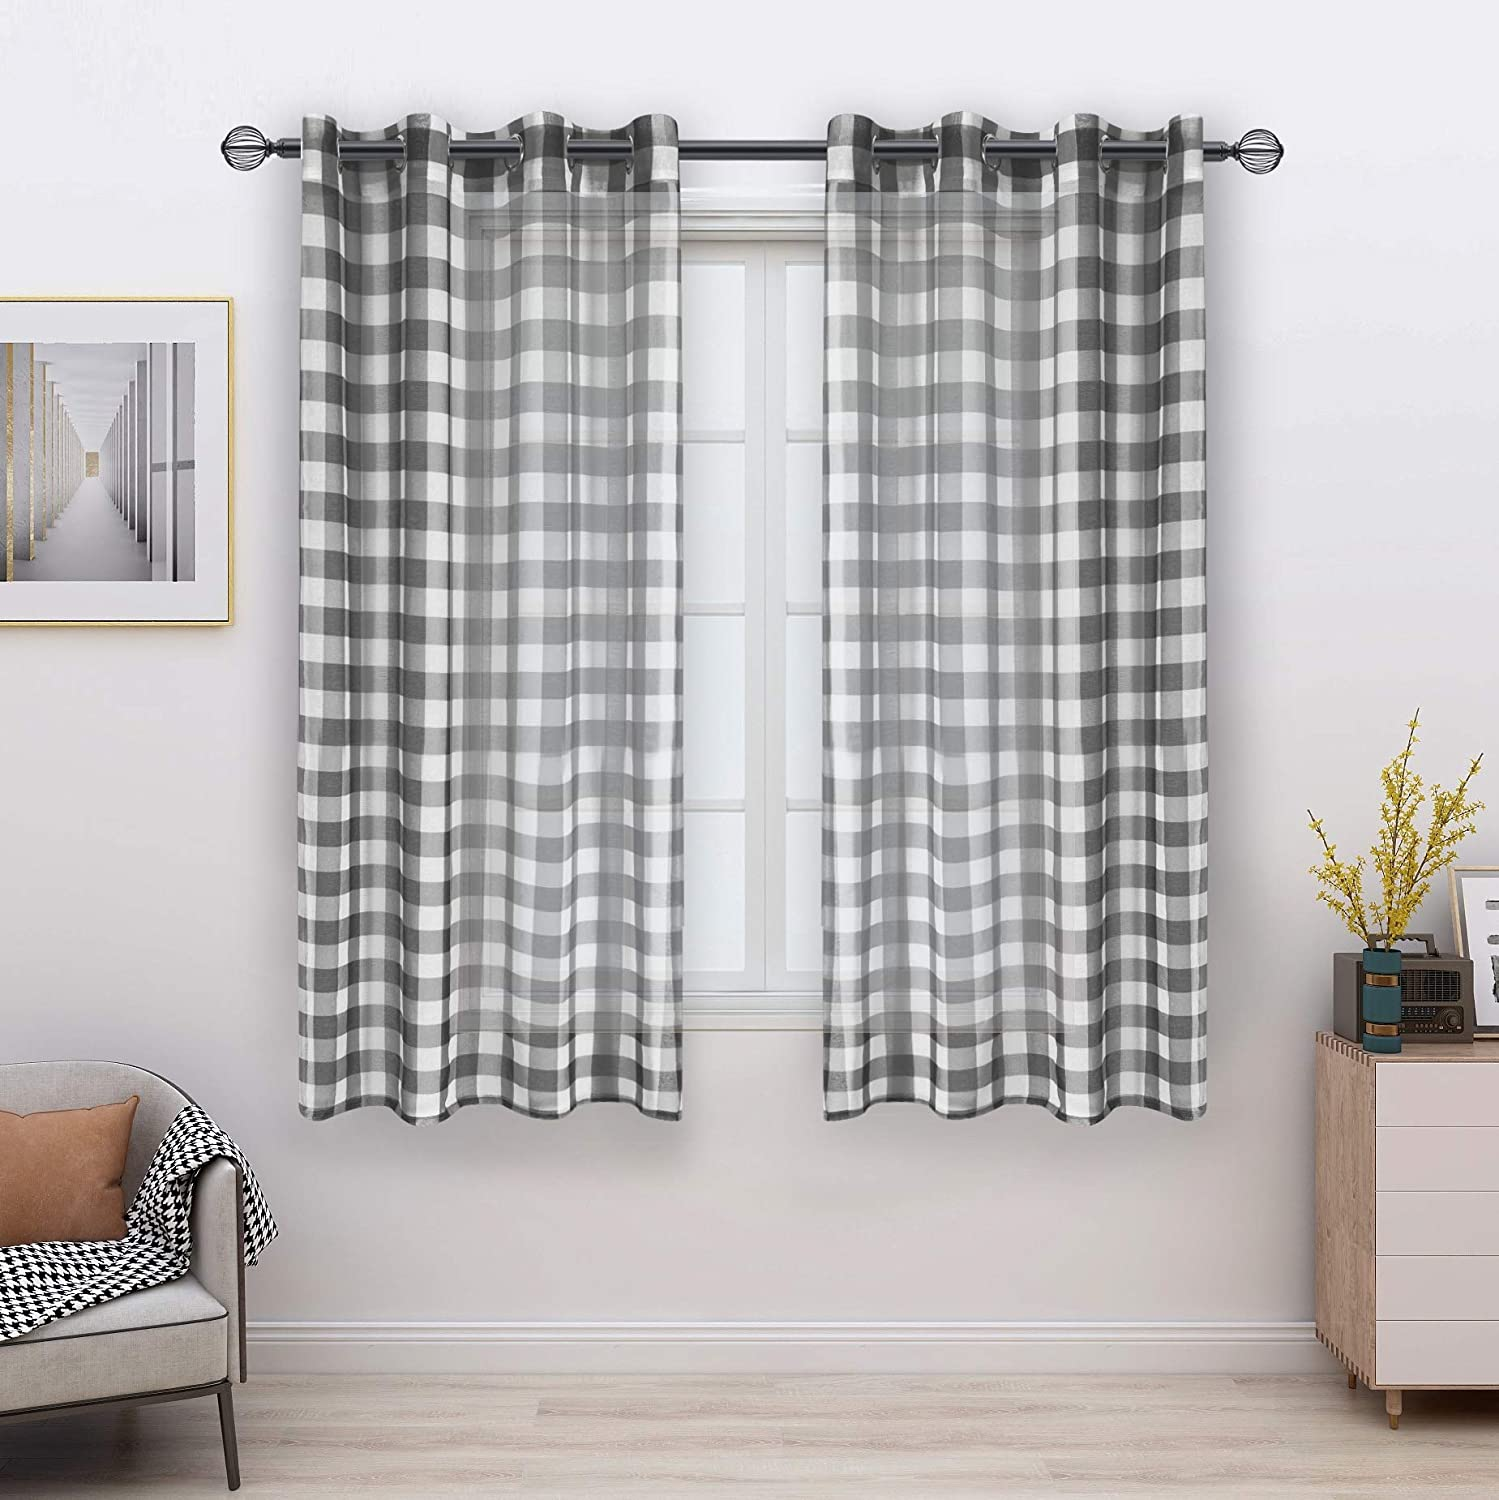 FLOWEROOM Buffalo Plaid Sheer Curtains for Living Room/Bedroom, Grey-White, 52 x 63 Inch Long – Light Filtering and Privacy Checkered Curtain, Grommet Semi Sheer Voile, Set of 2 Panels